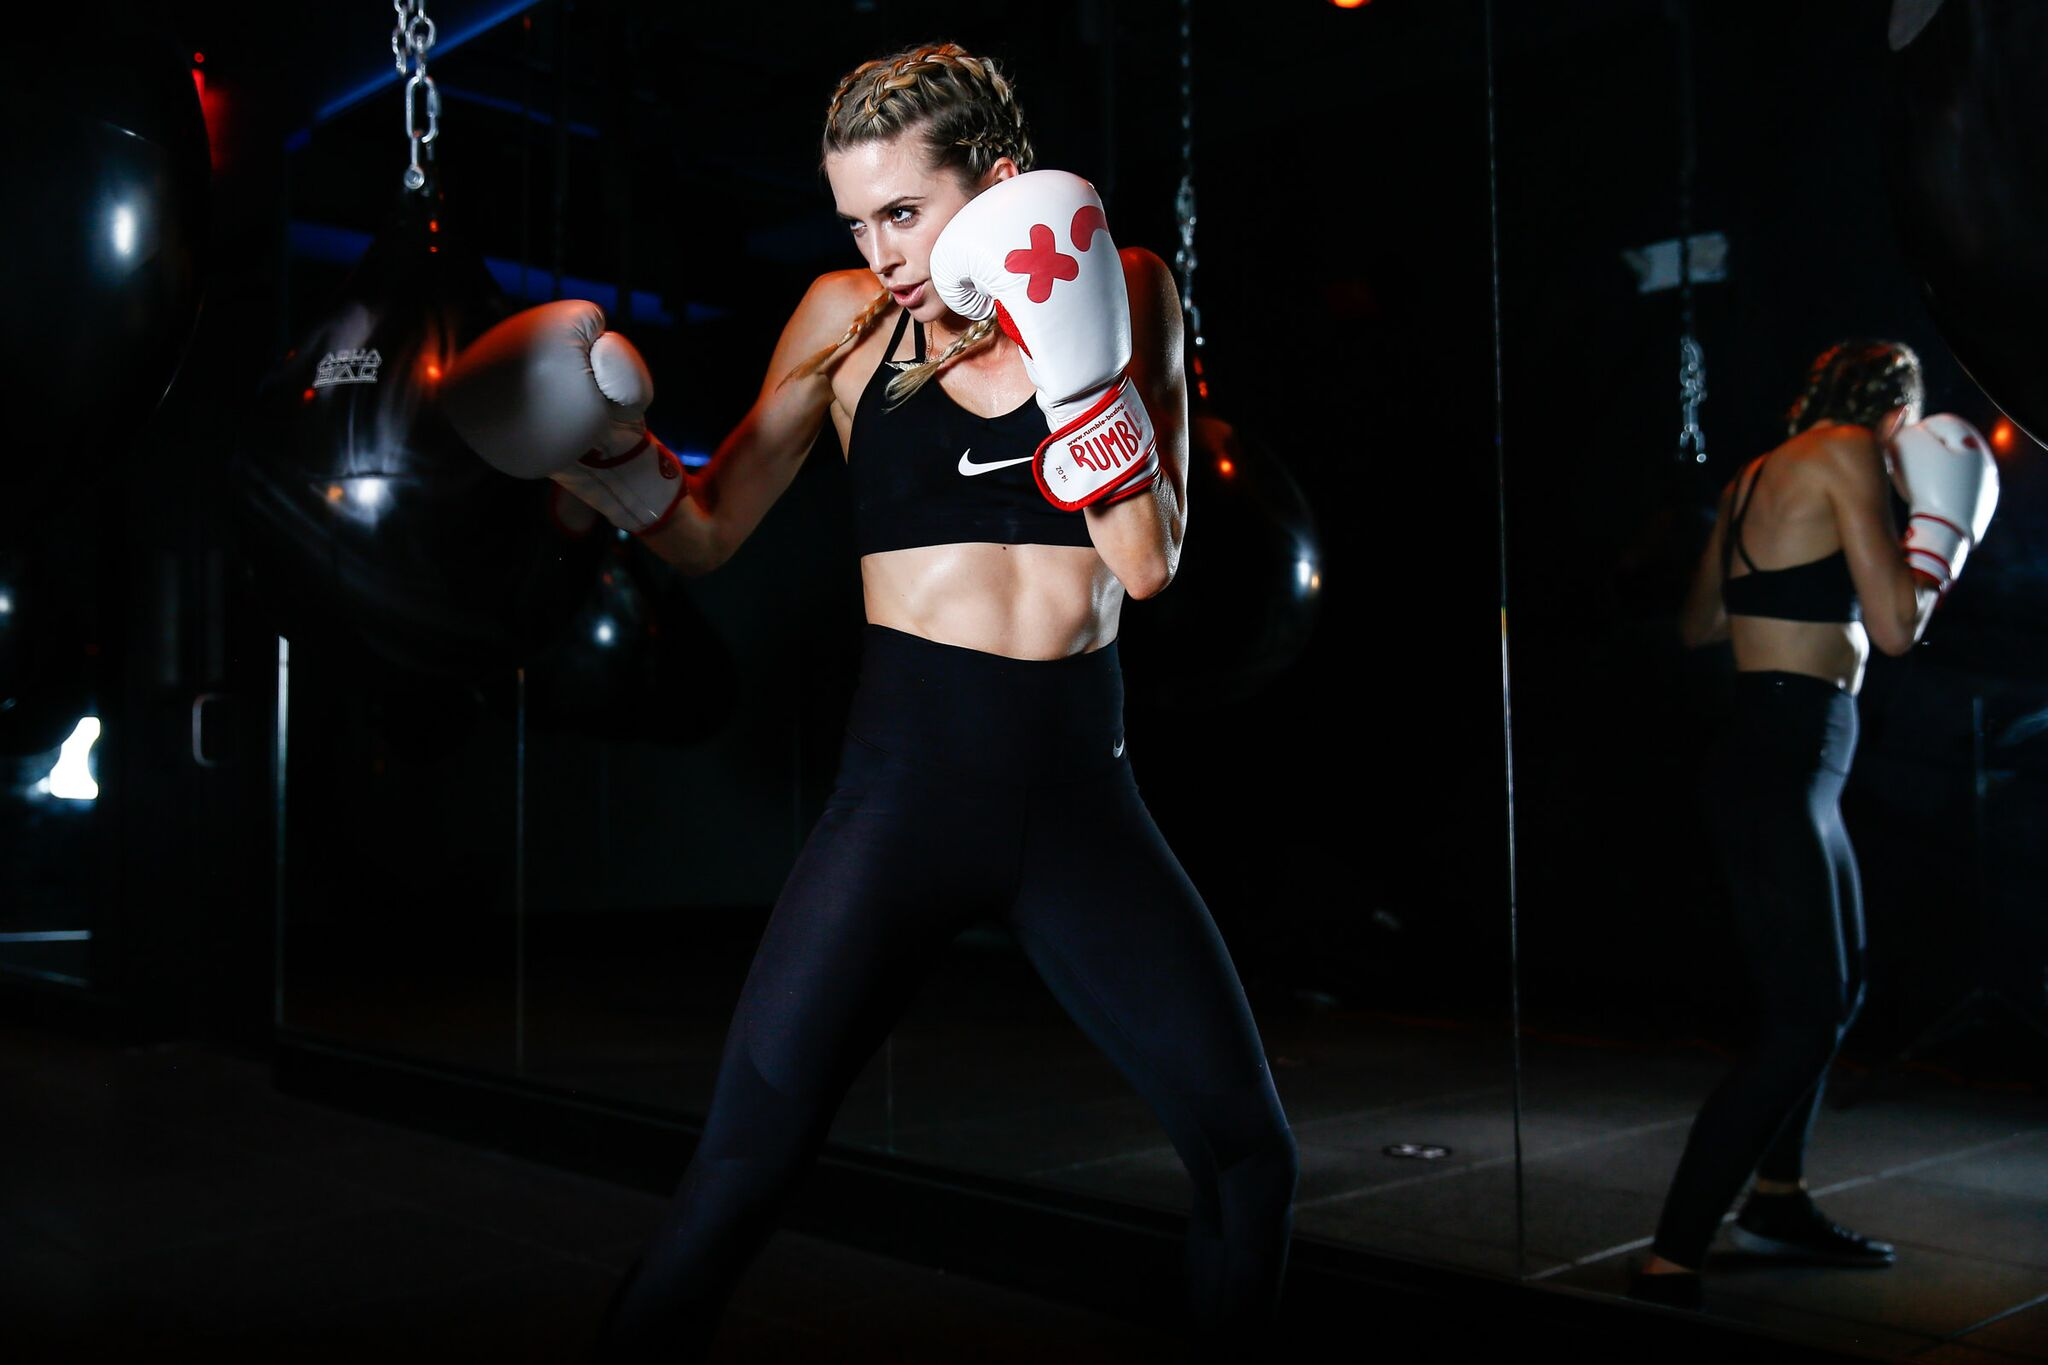 Rumble{ }is a 45-minute, 10-round HIIT class combining boxing and strength training. (Image: Trapp Photos/ Courtesy Rumble)